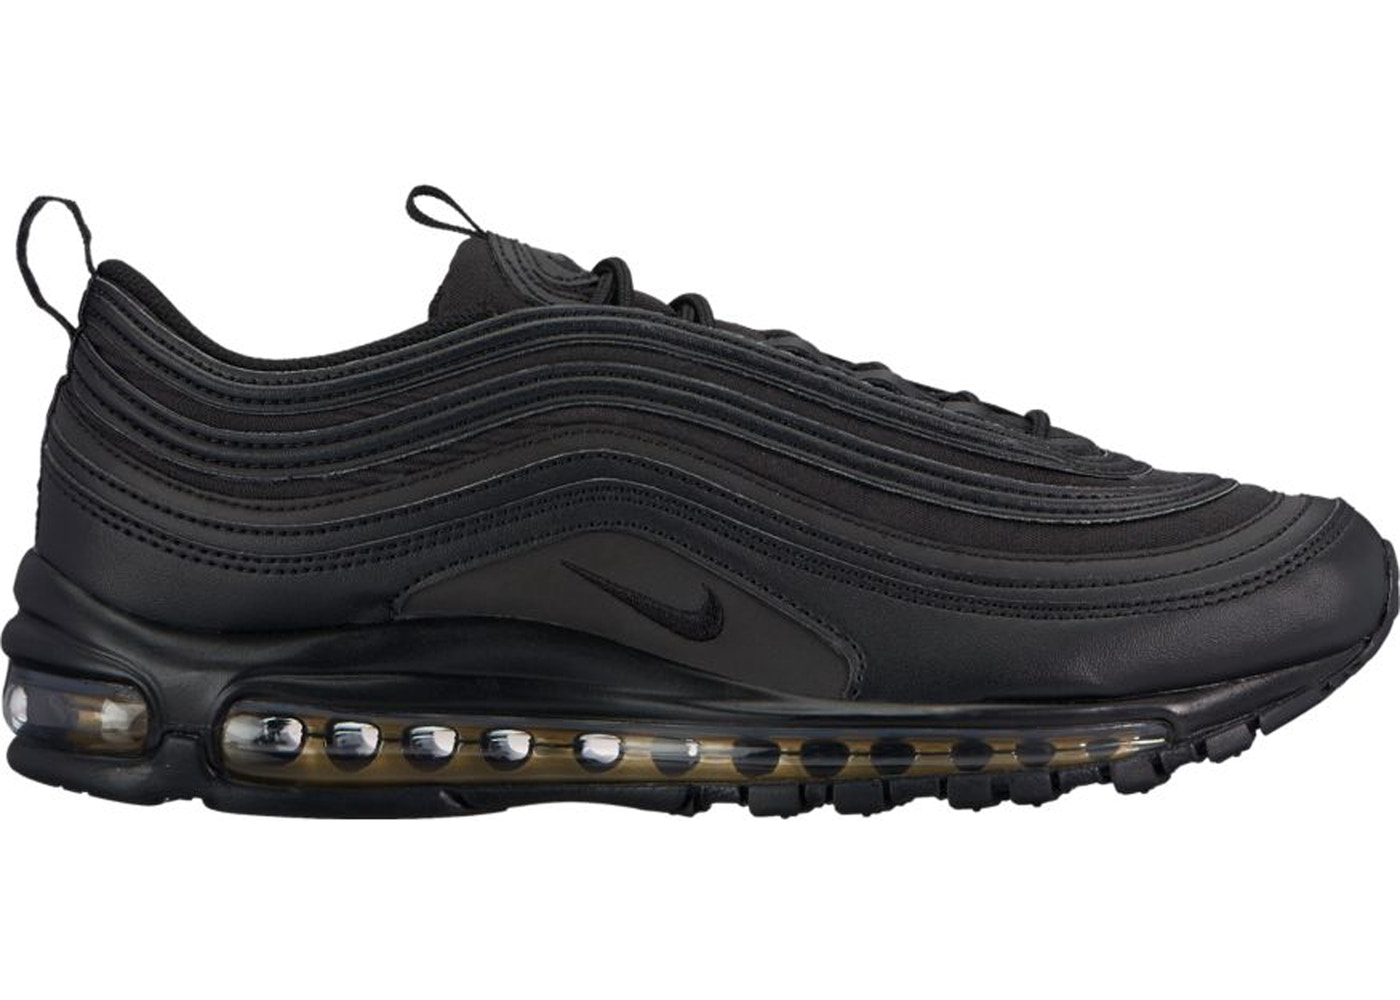 Nike AIR MAX 97 ULTRA Black/Black/Black Hype DC